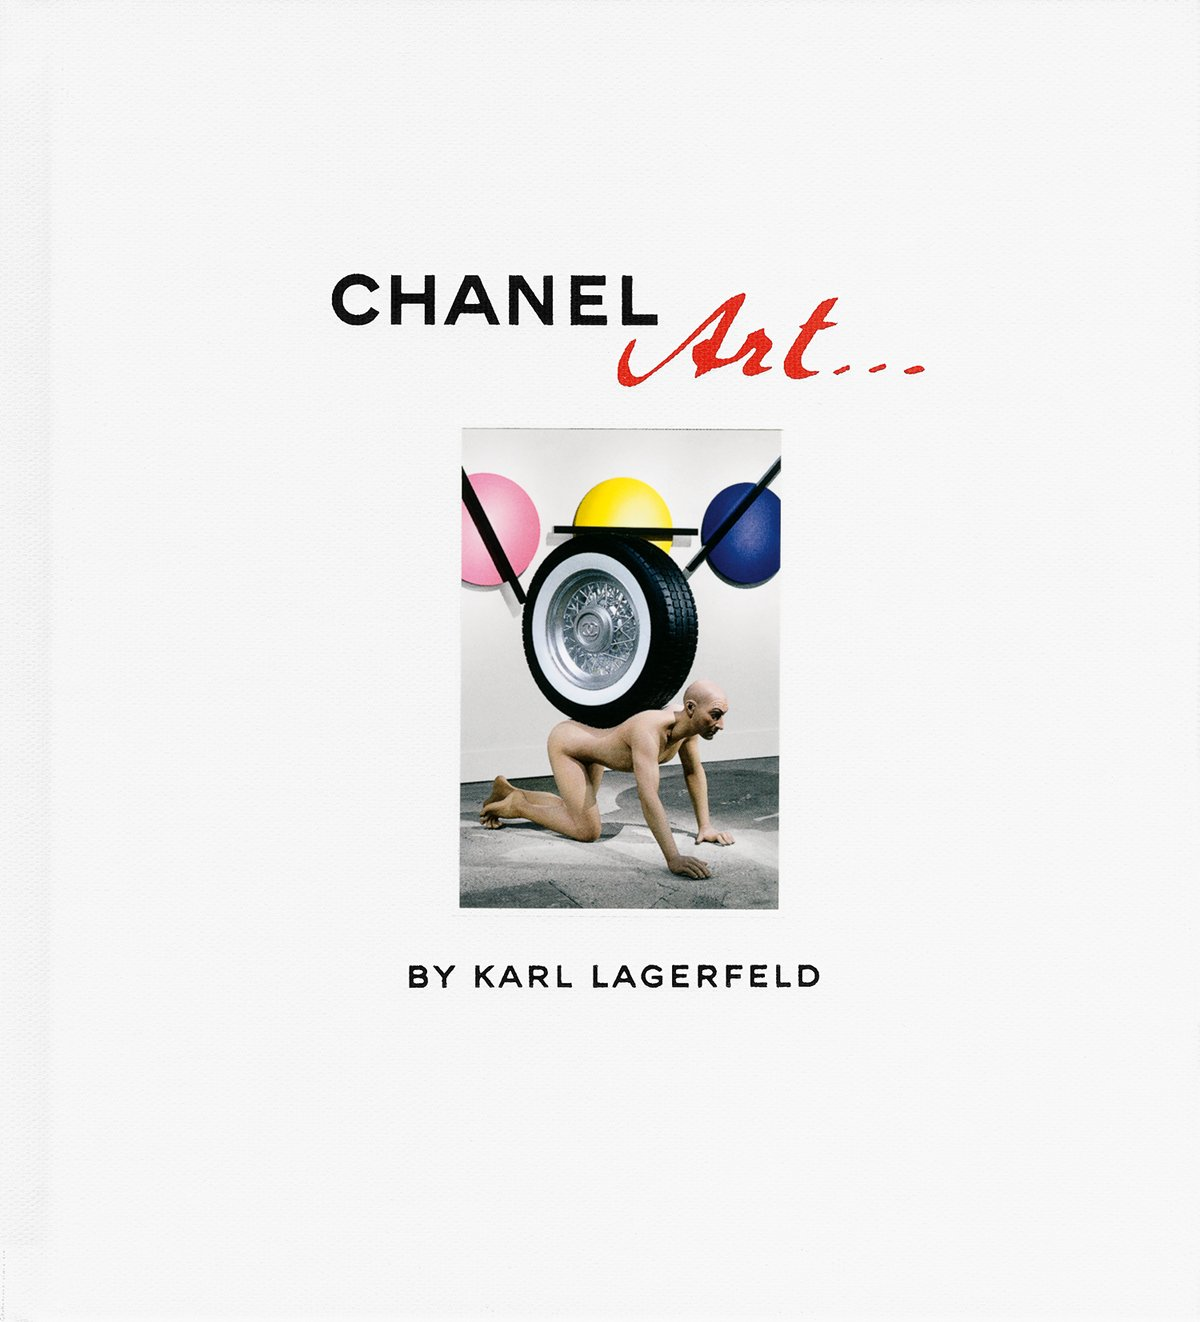 chanel-art-karl-lagerfeld